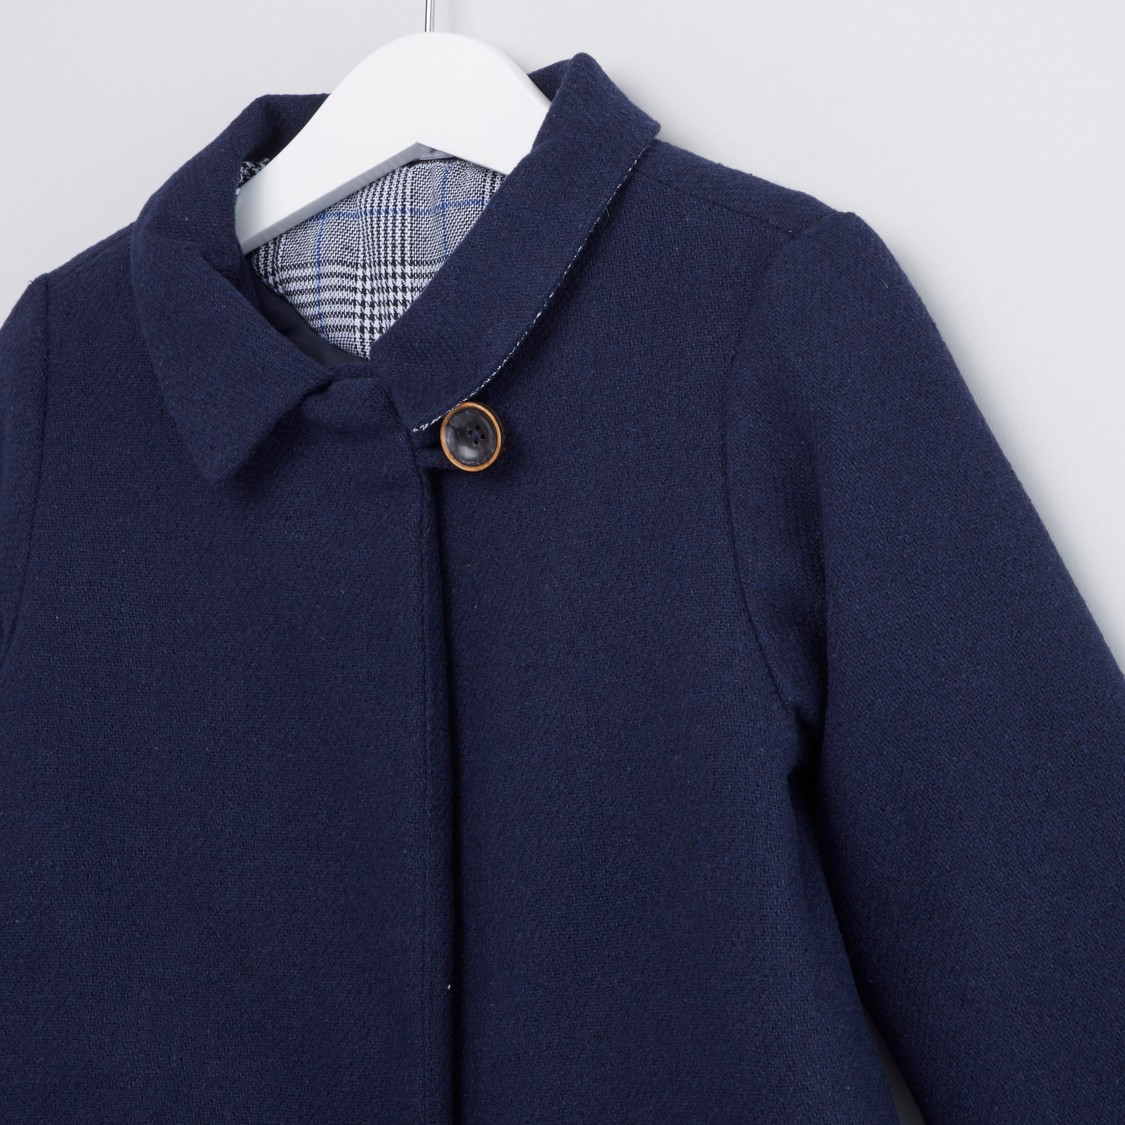 Plain Jacket with Long Sleeves and Pocket Detail